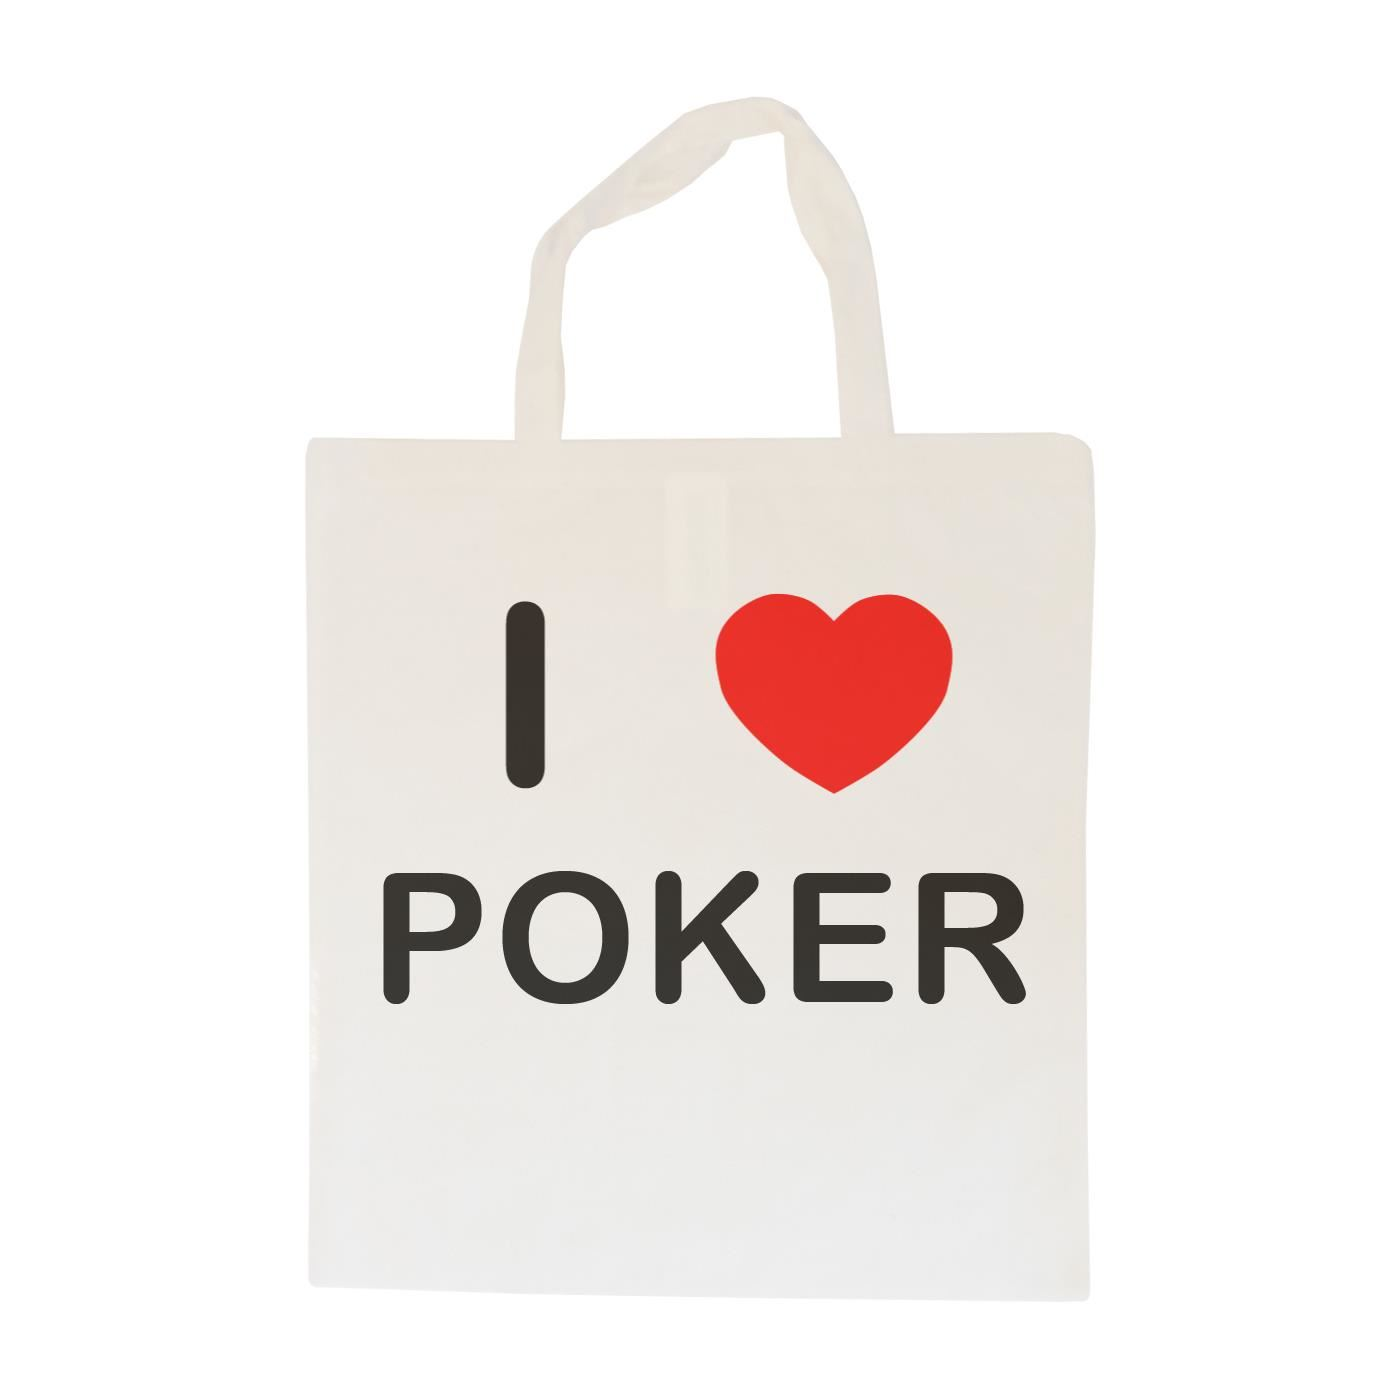 I Love Poker - Cotton Bag | Size choice Tote, Shopper or Sling